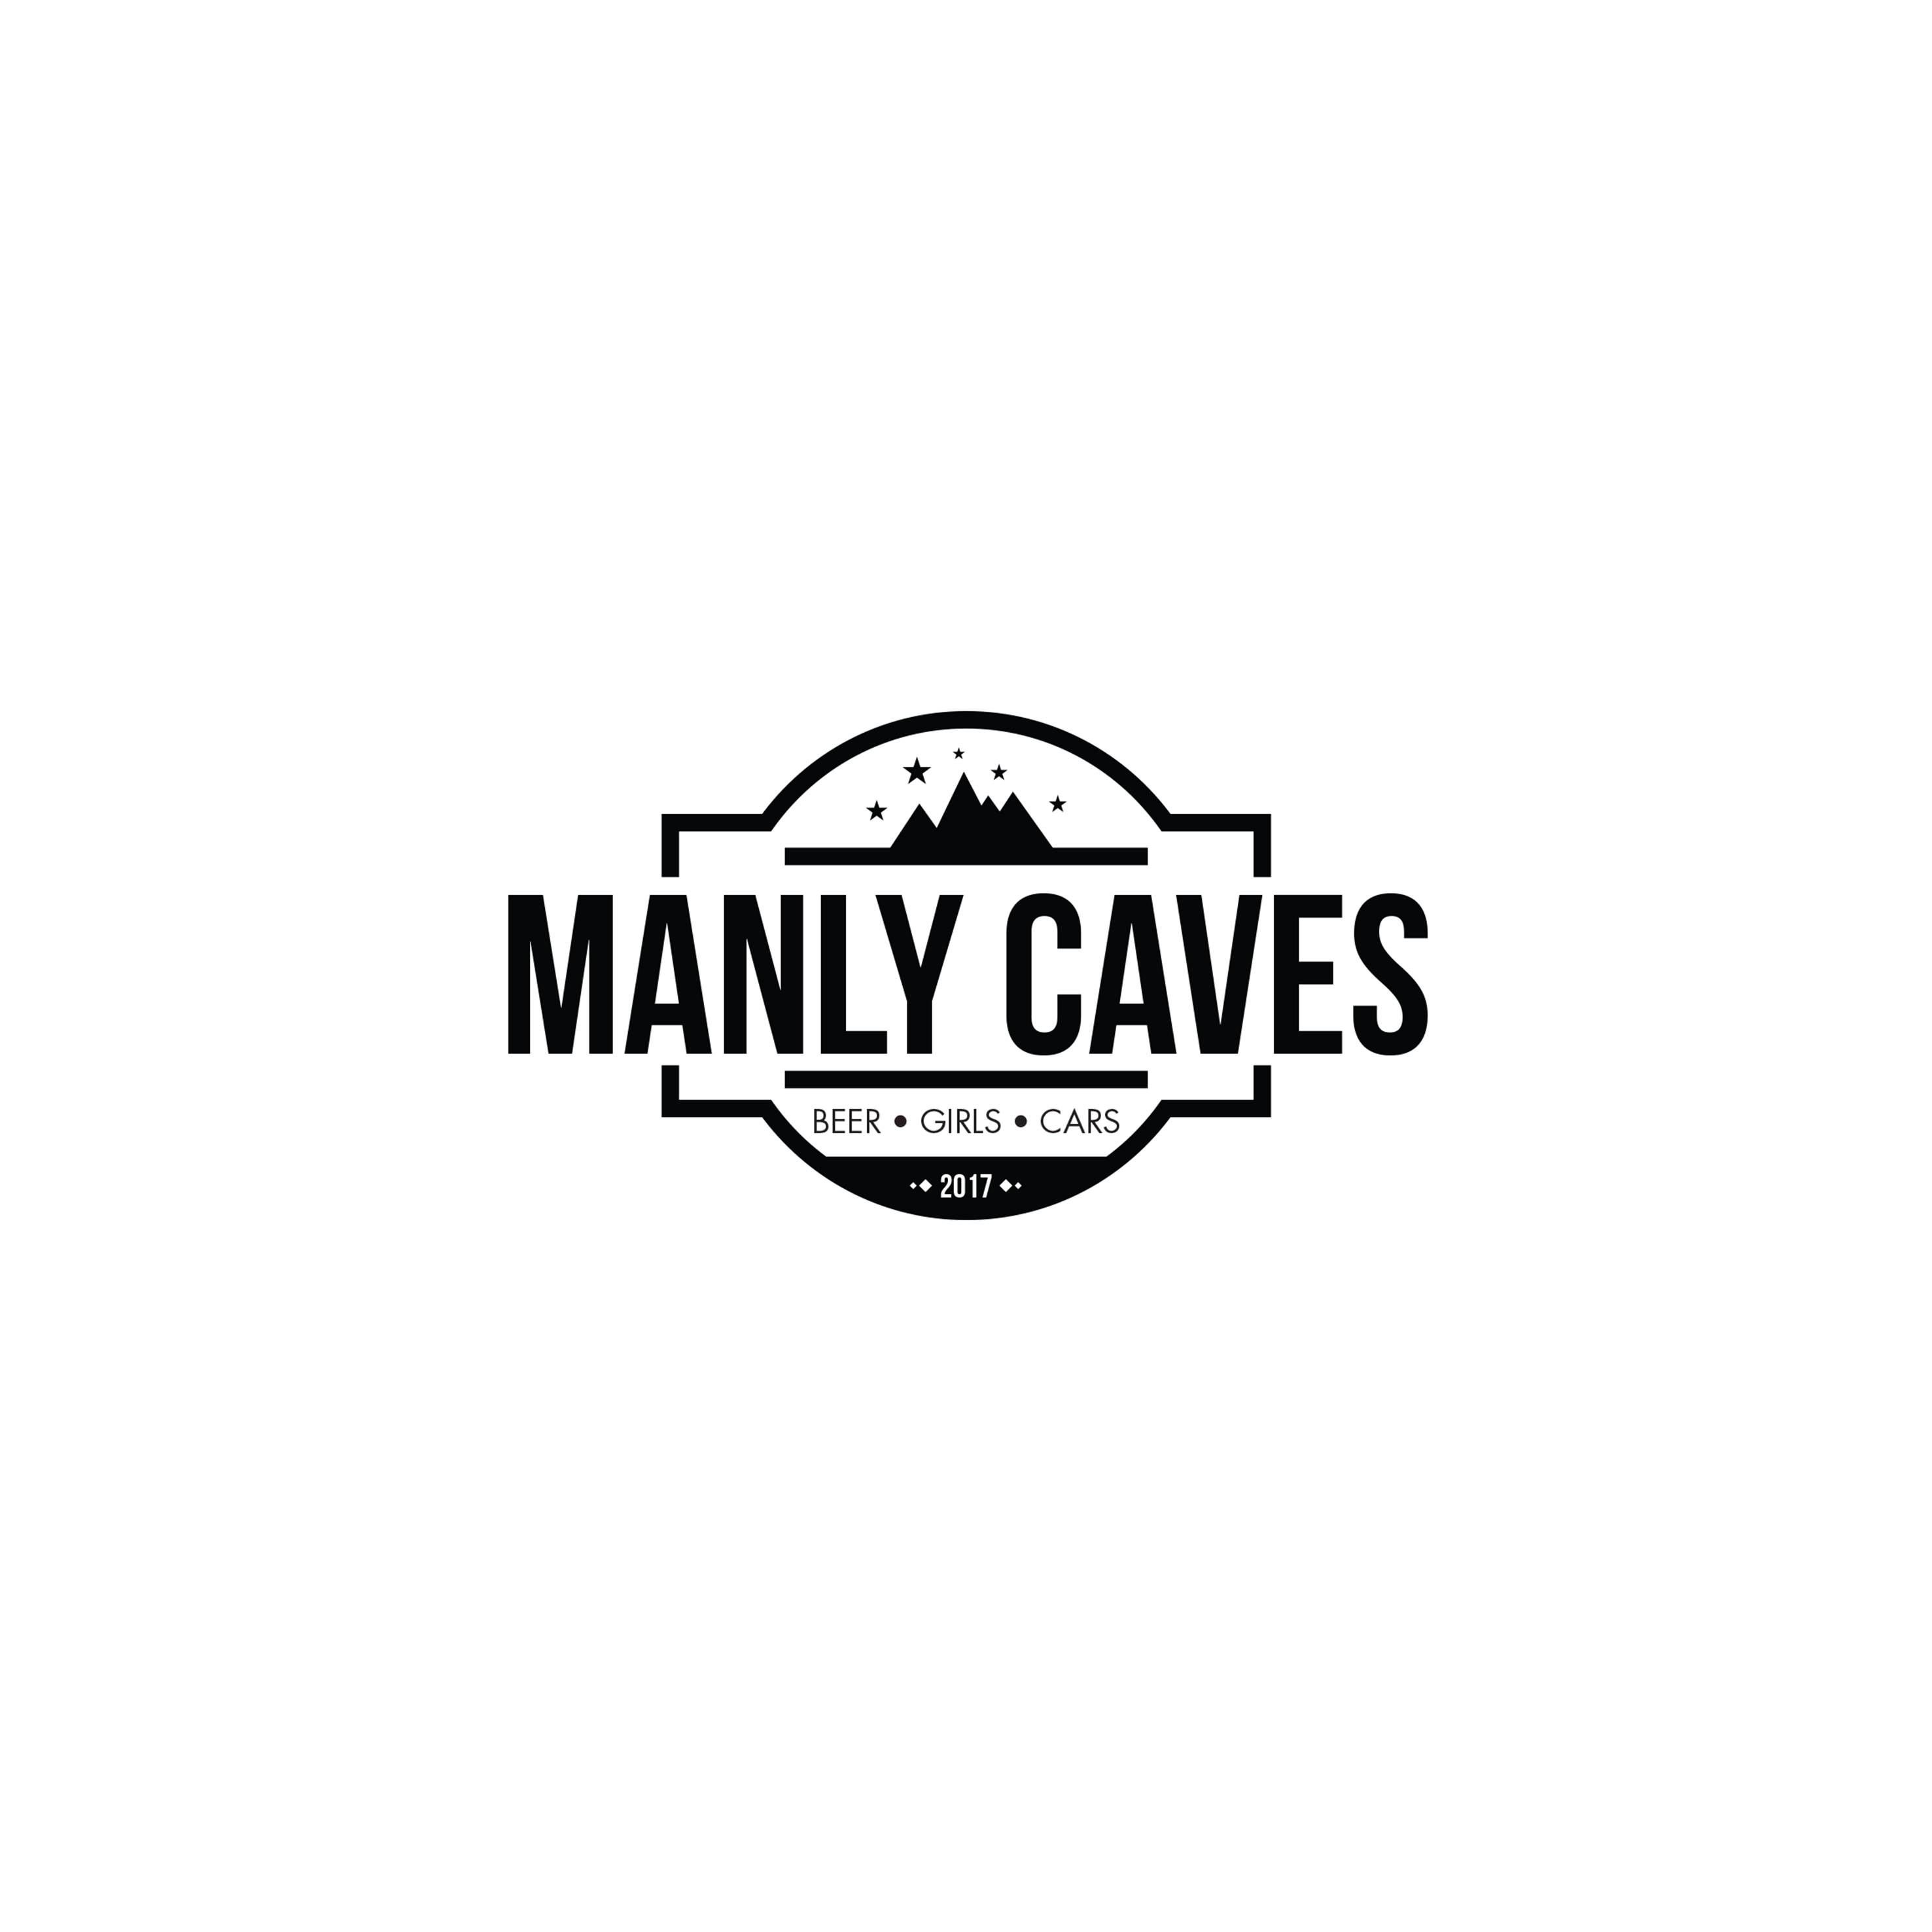 Manly Caves Logo Design